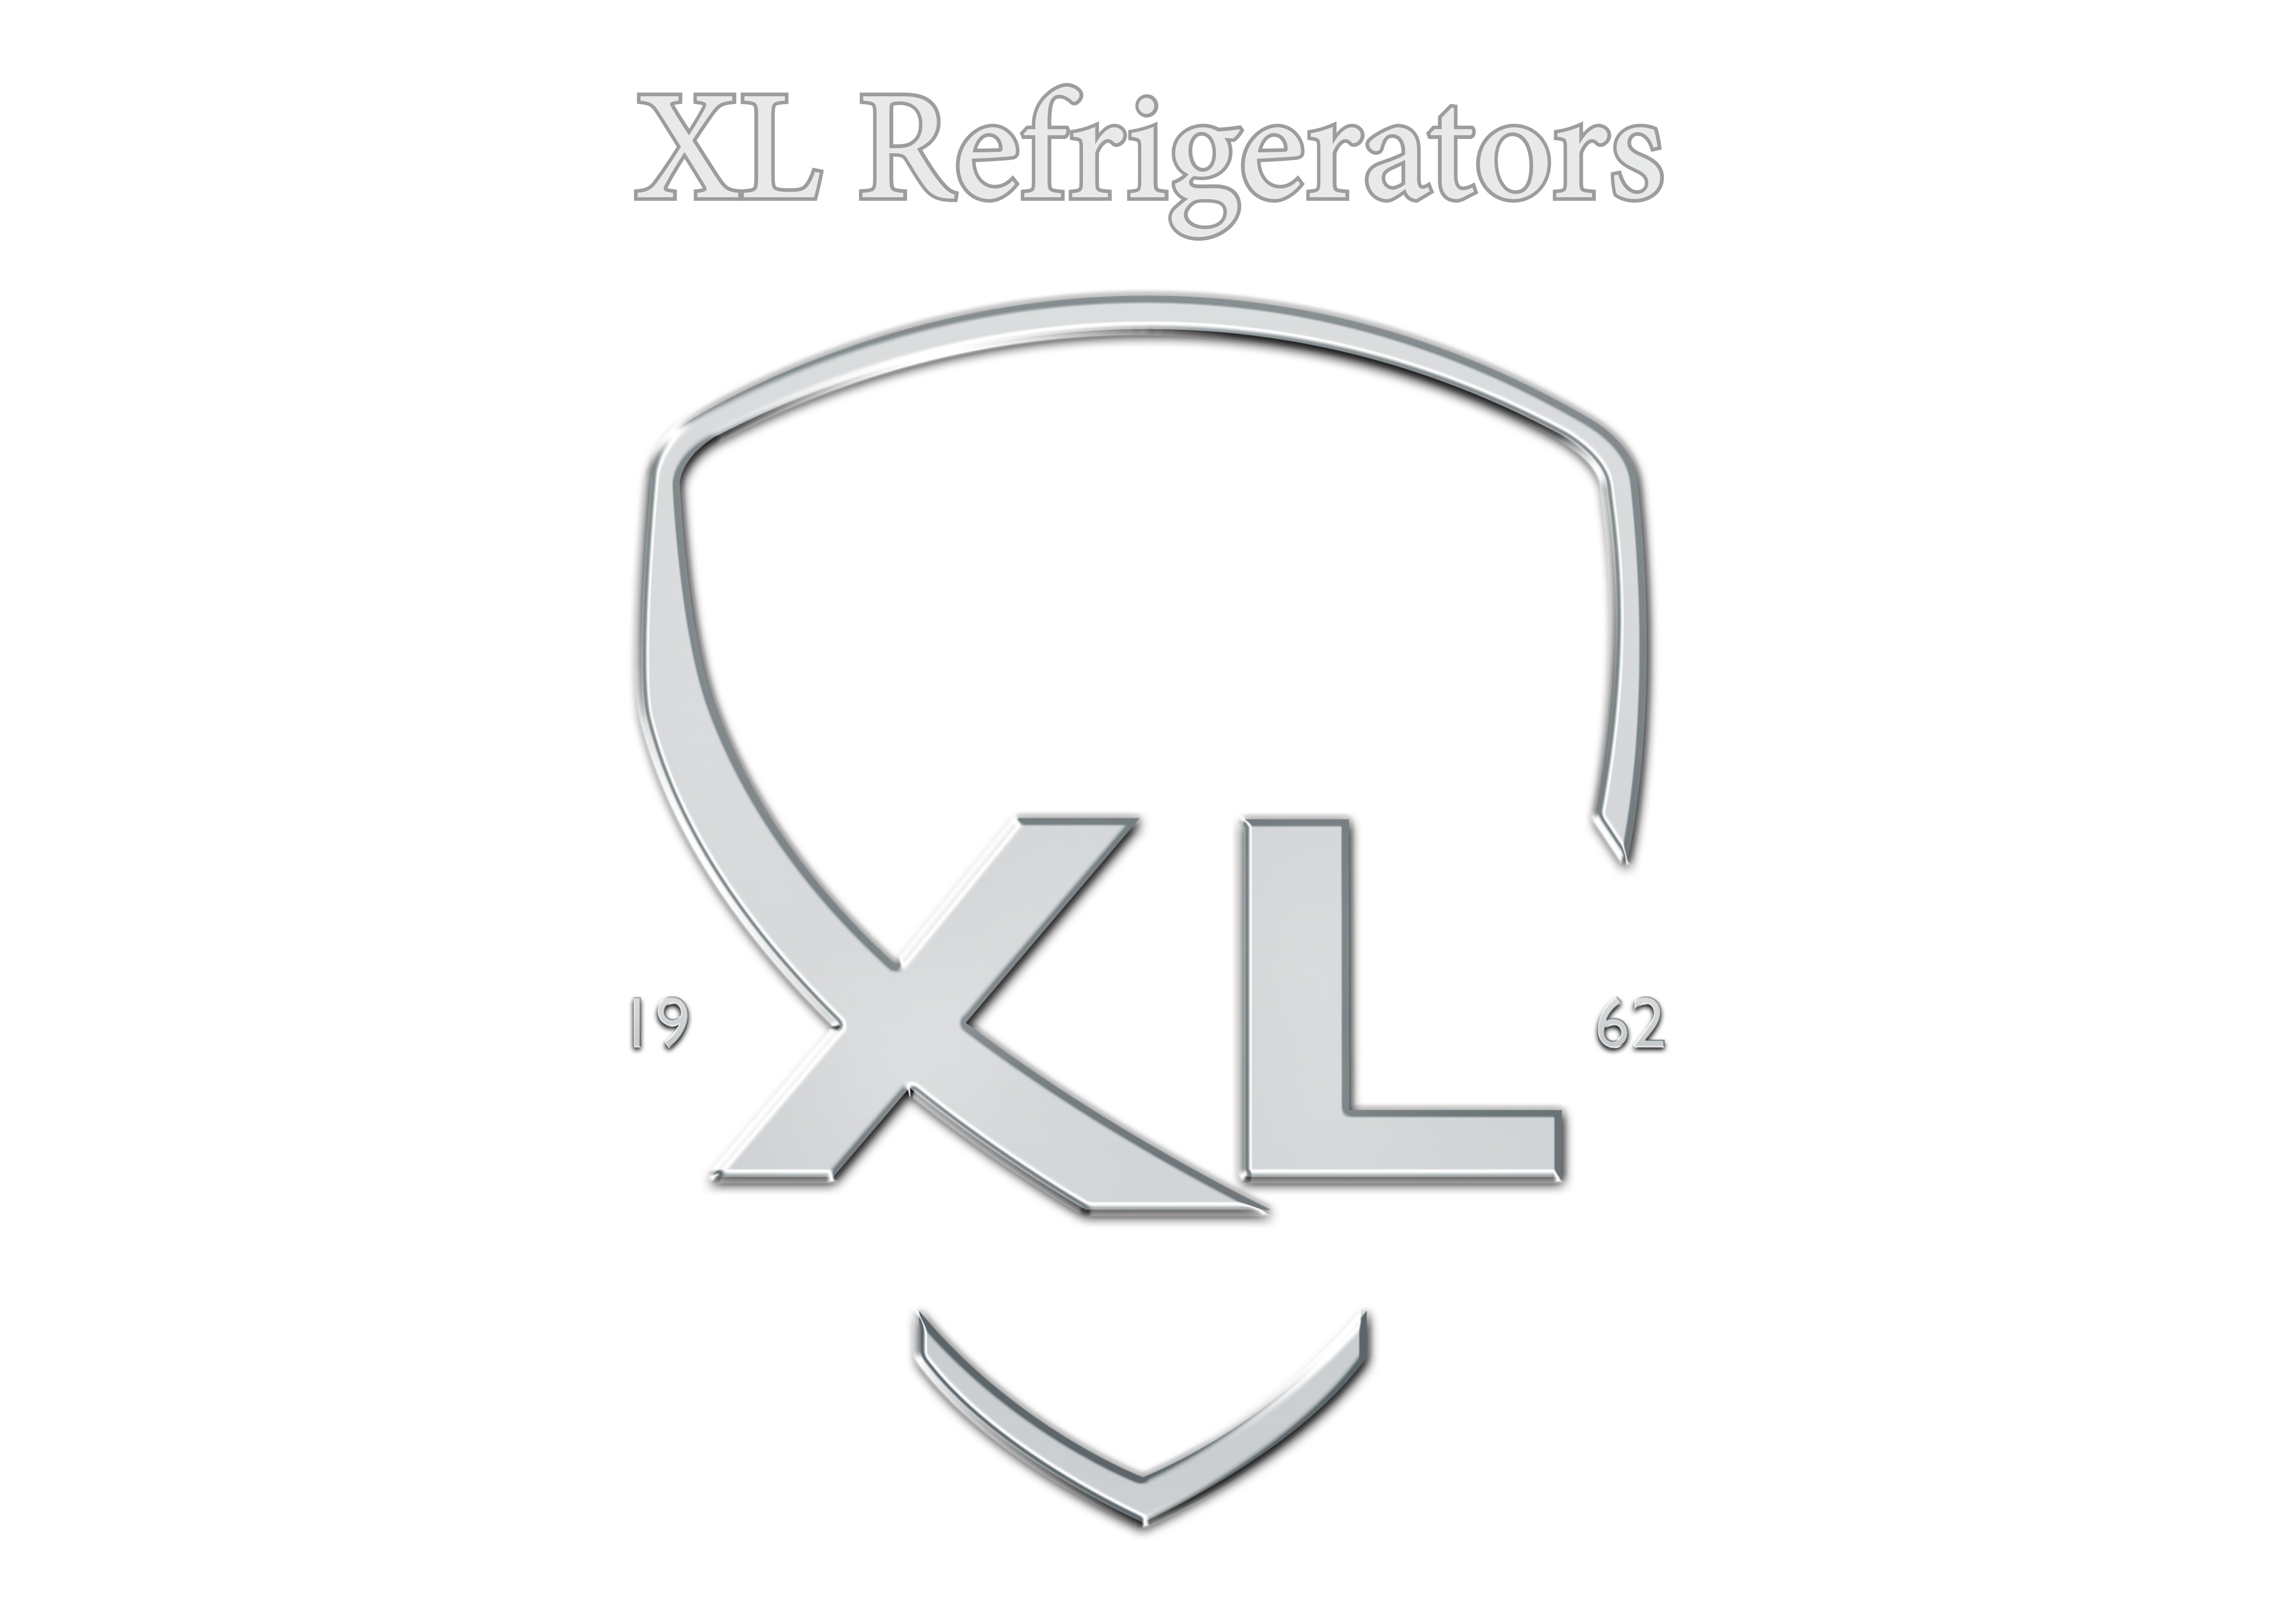 XL Refrigerators